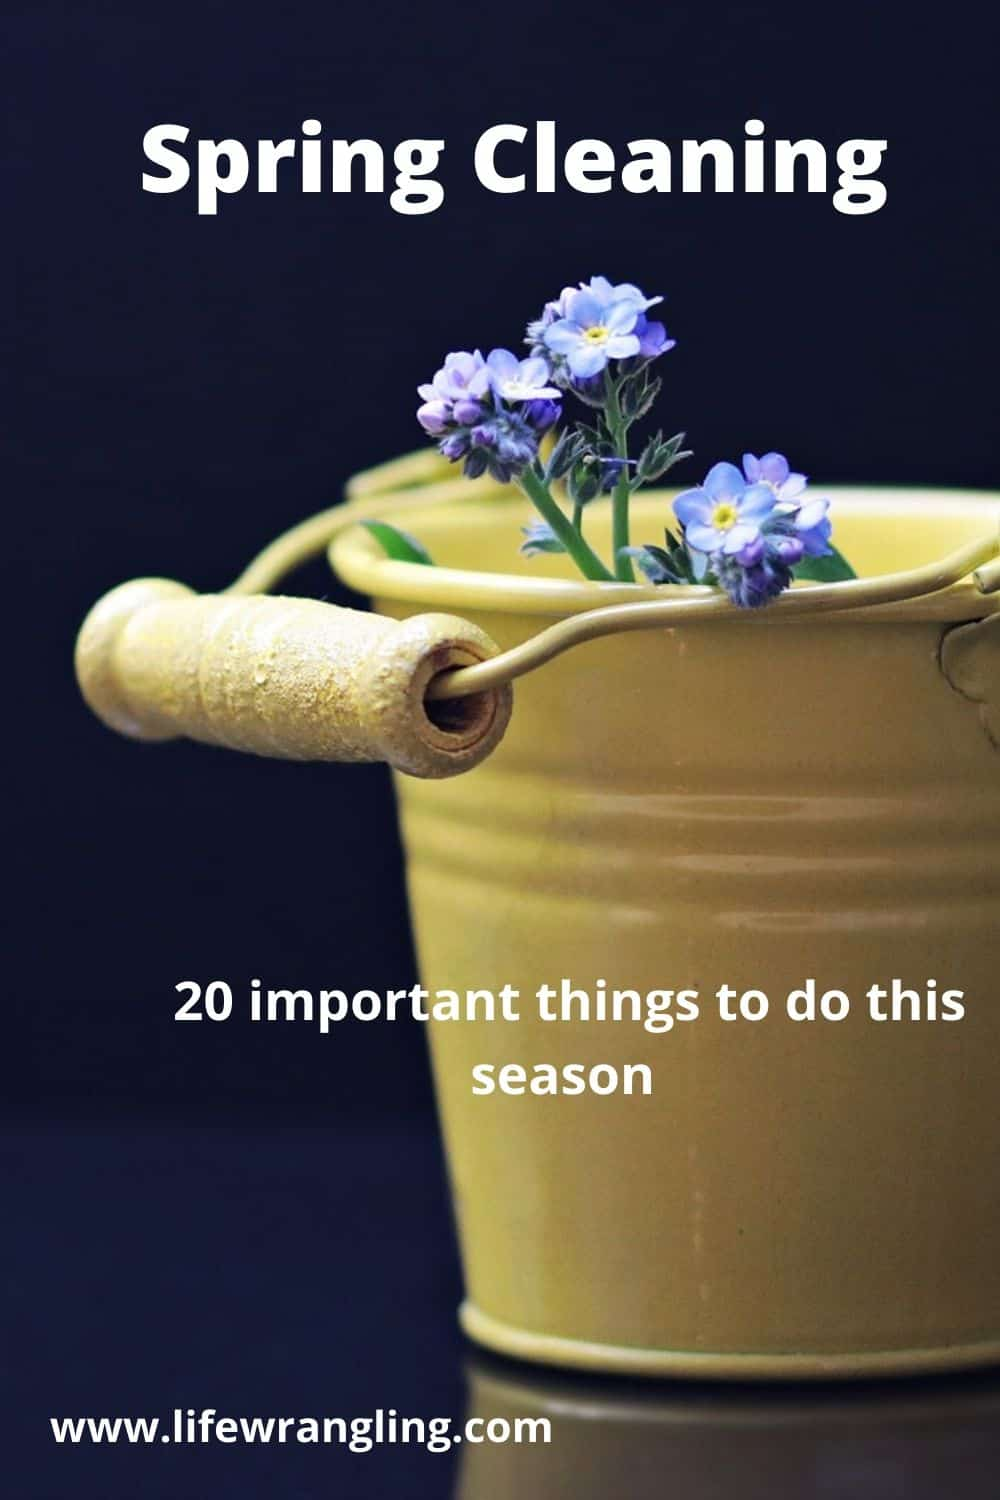 Spring Cleaning. Clean these 20 things simply and easily. #springcleaning